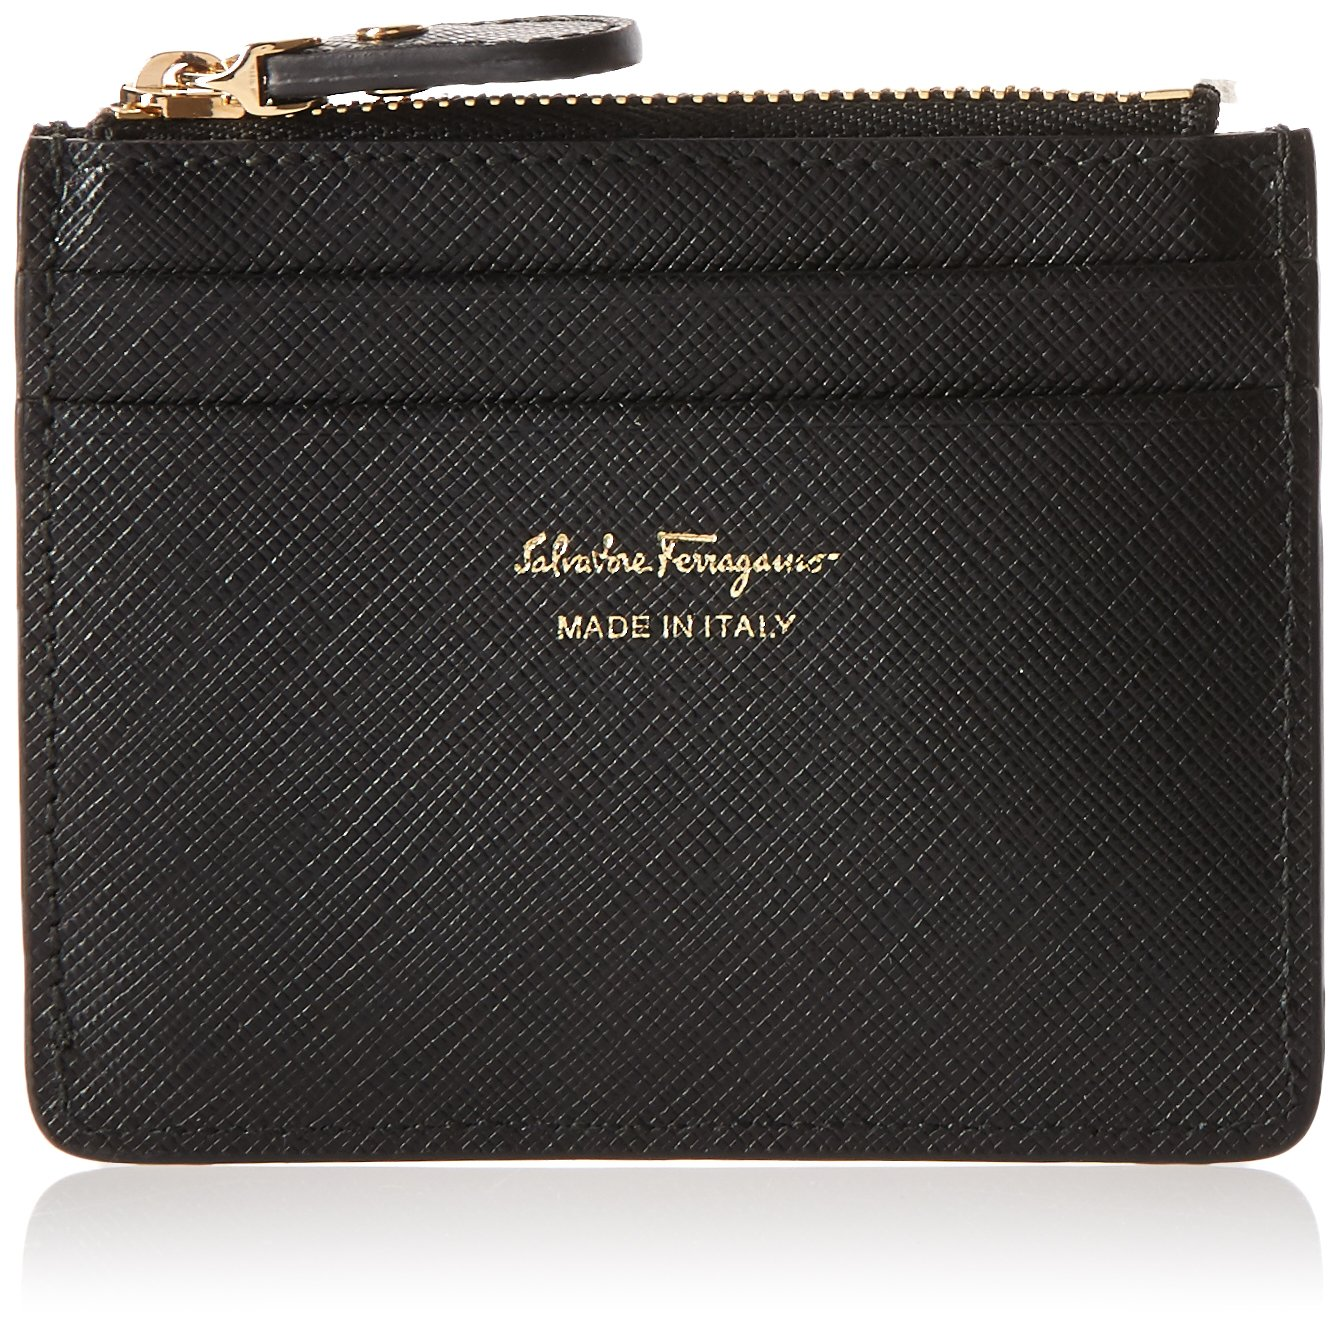 Salvatore Ferragamo Women's Gancio Card Holder 614520, Black, One Size